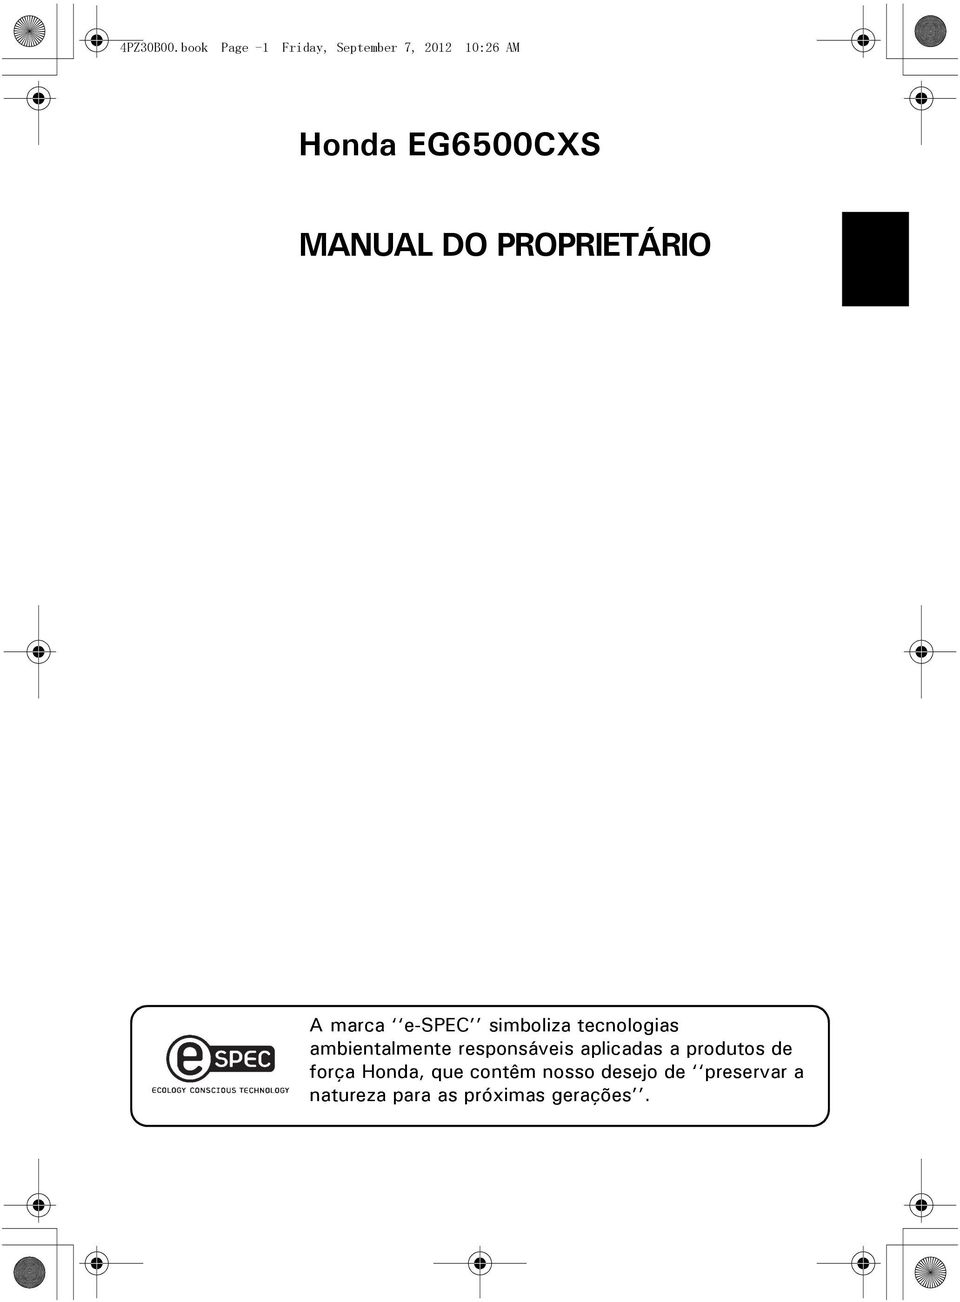 MANUAL DO PROPRIETÁRIO A marca e-spec simboliza tecnologias